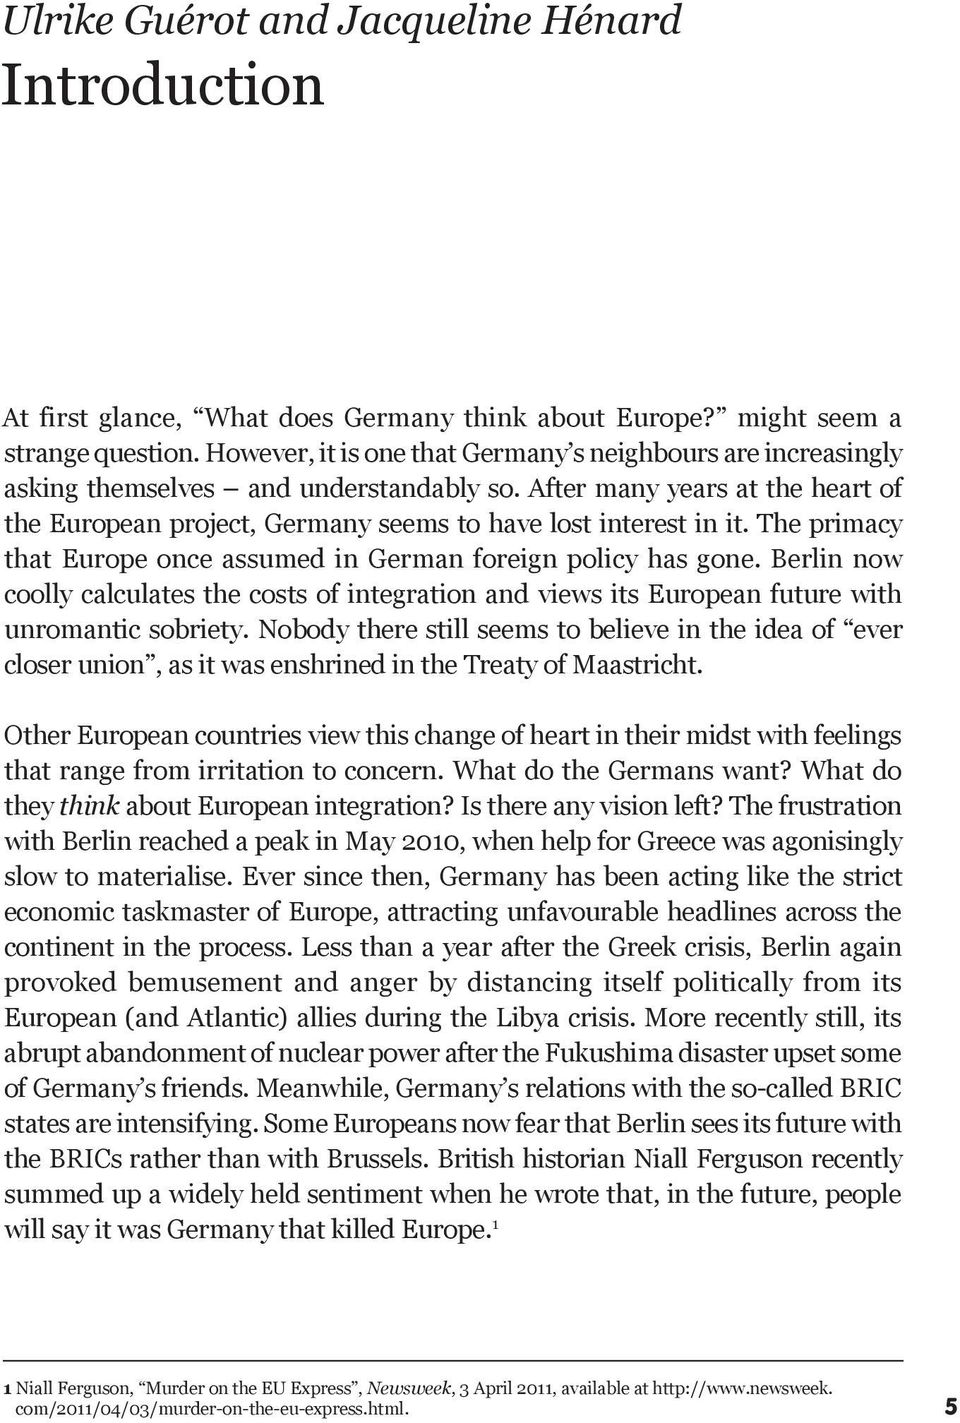 The primacy that Europe once assumed in German foreign policy has gone. Berlin now coolly calculates the costs of integration and views its European future with unromantic sobriety.